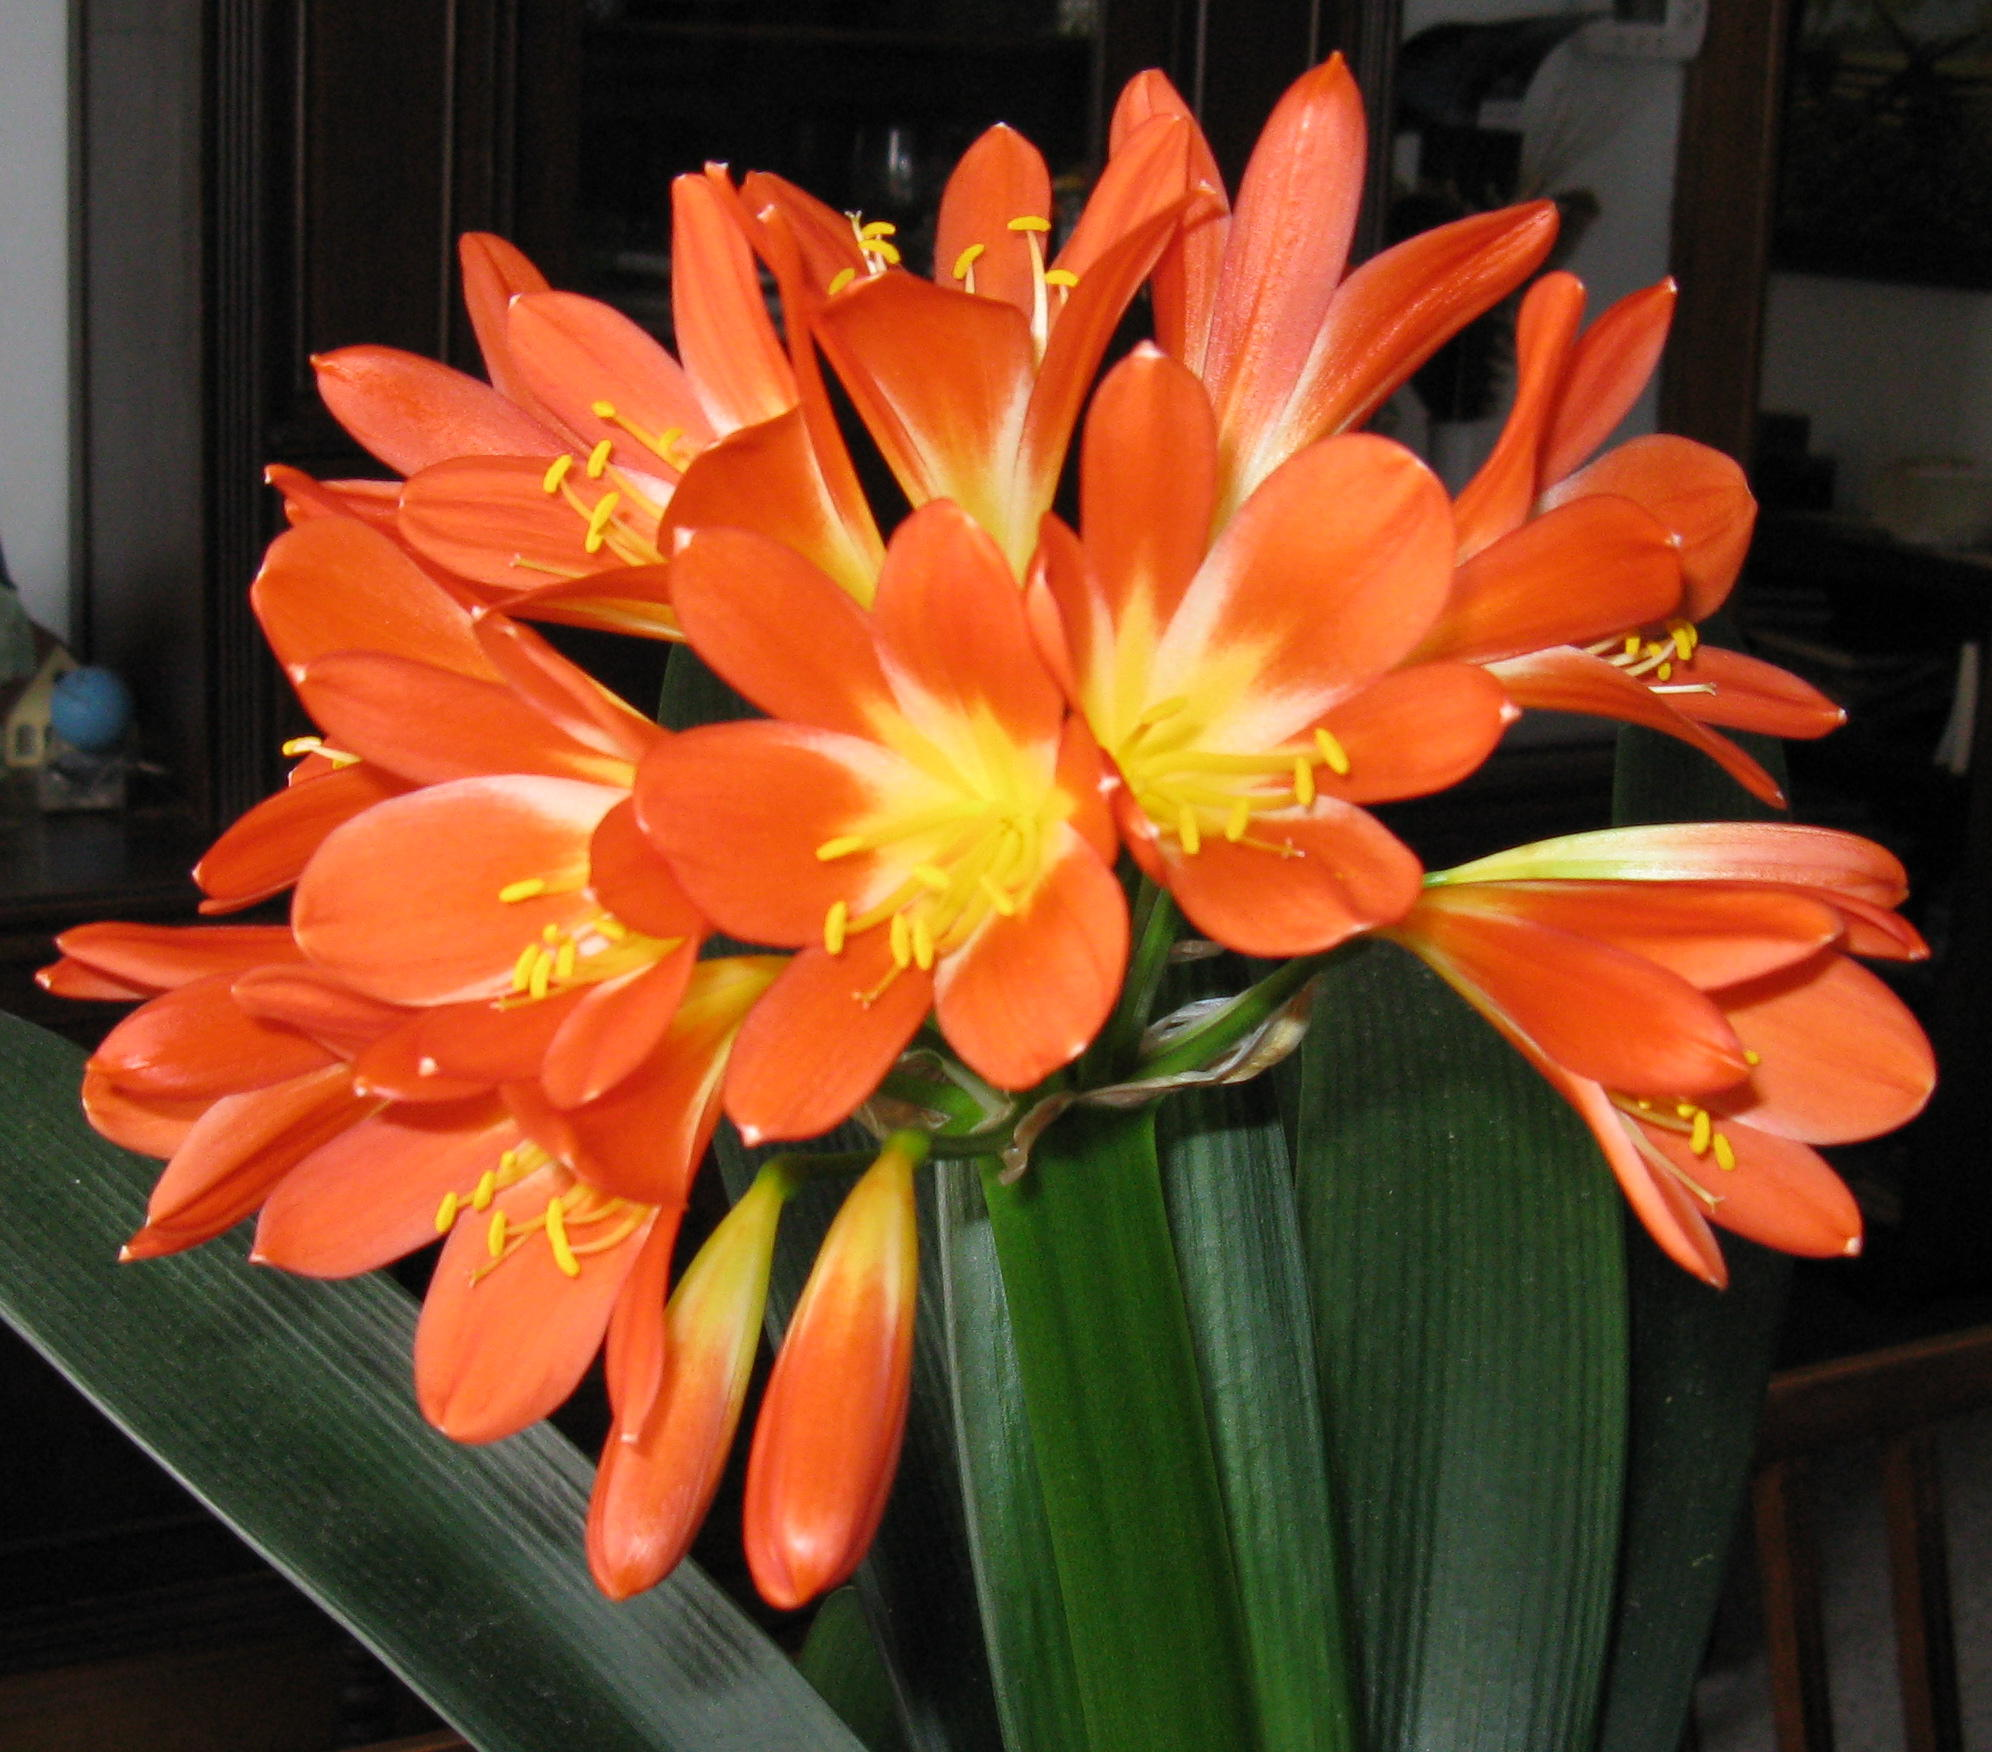 http://artaplantelor.files.wordpress.com/2010/03/full-bloom-clivia-0142.jpg